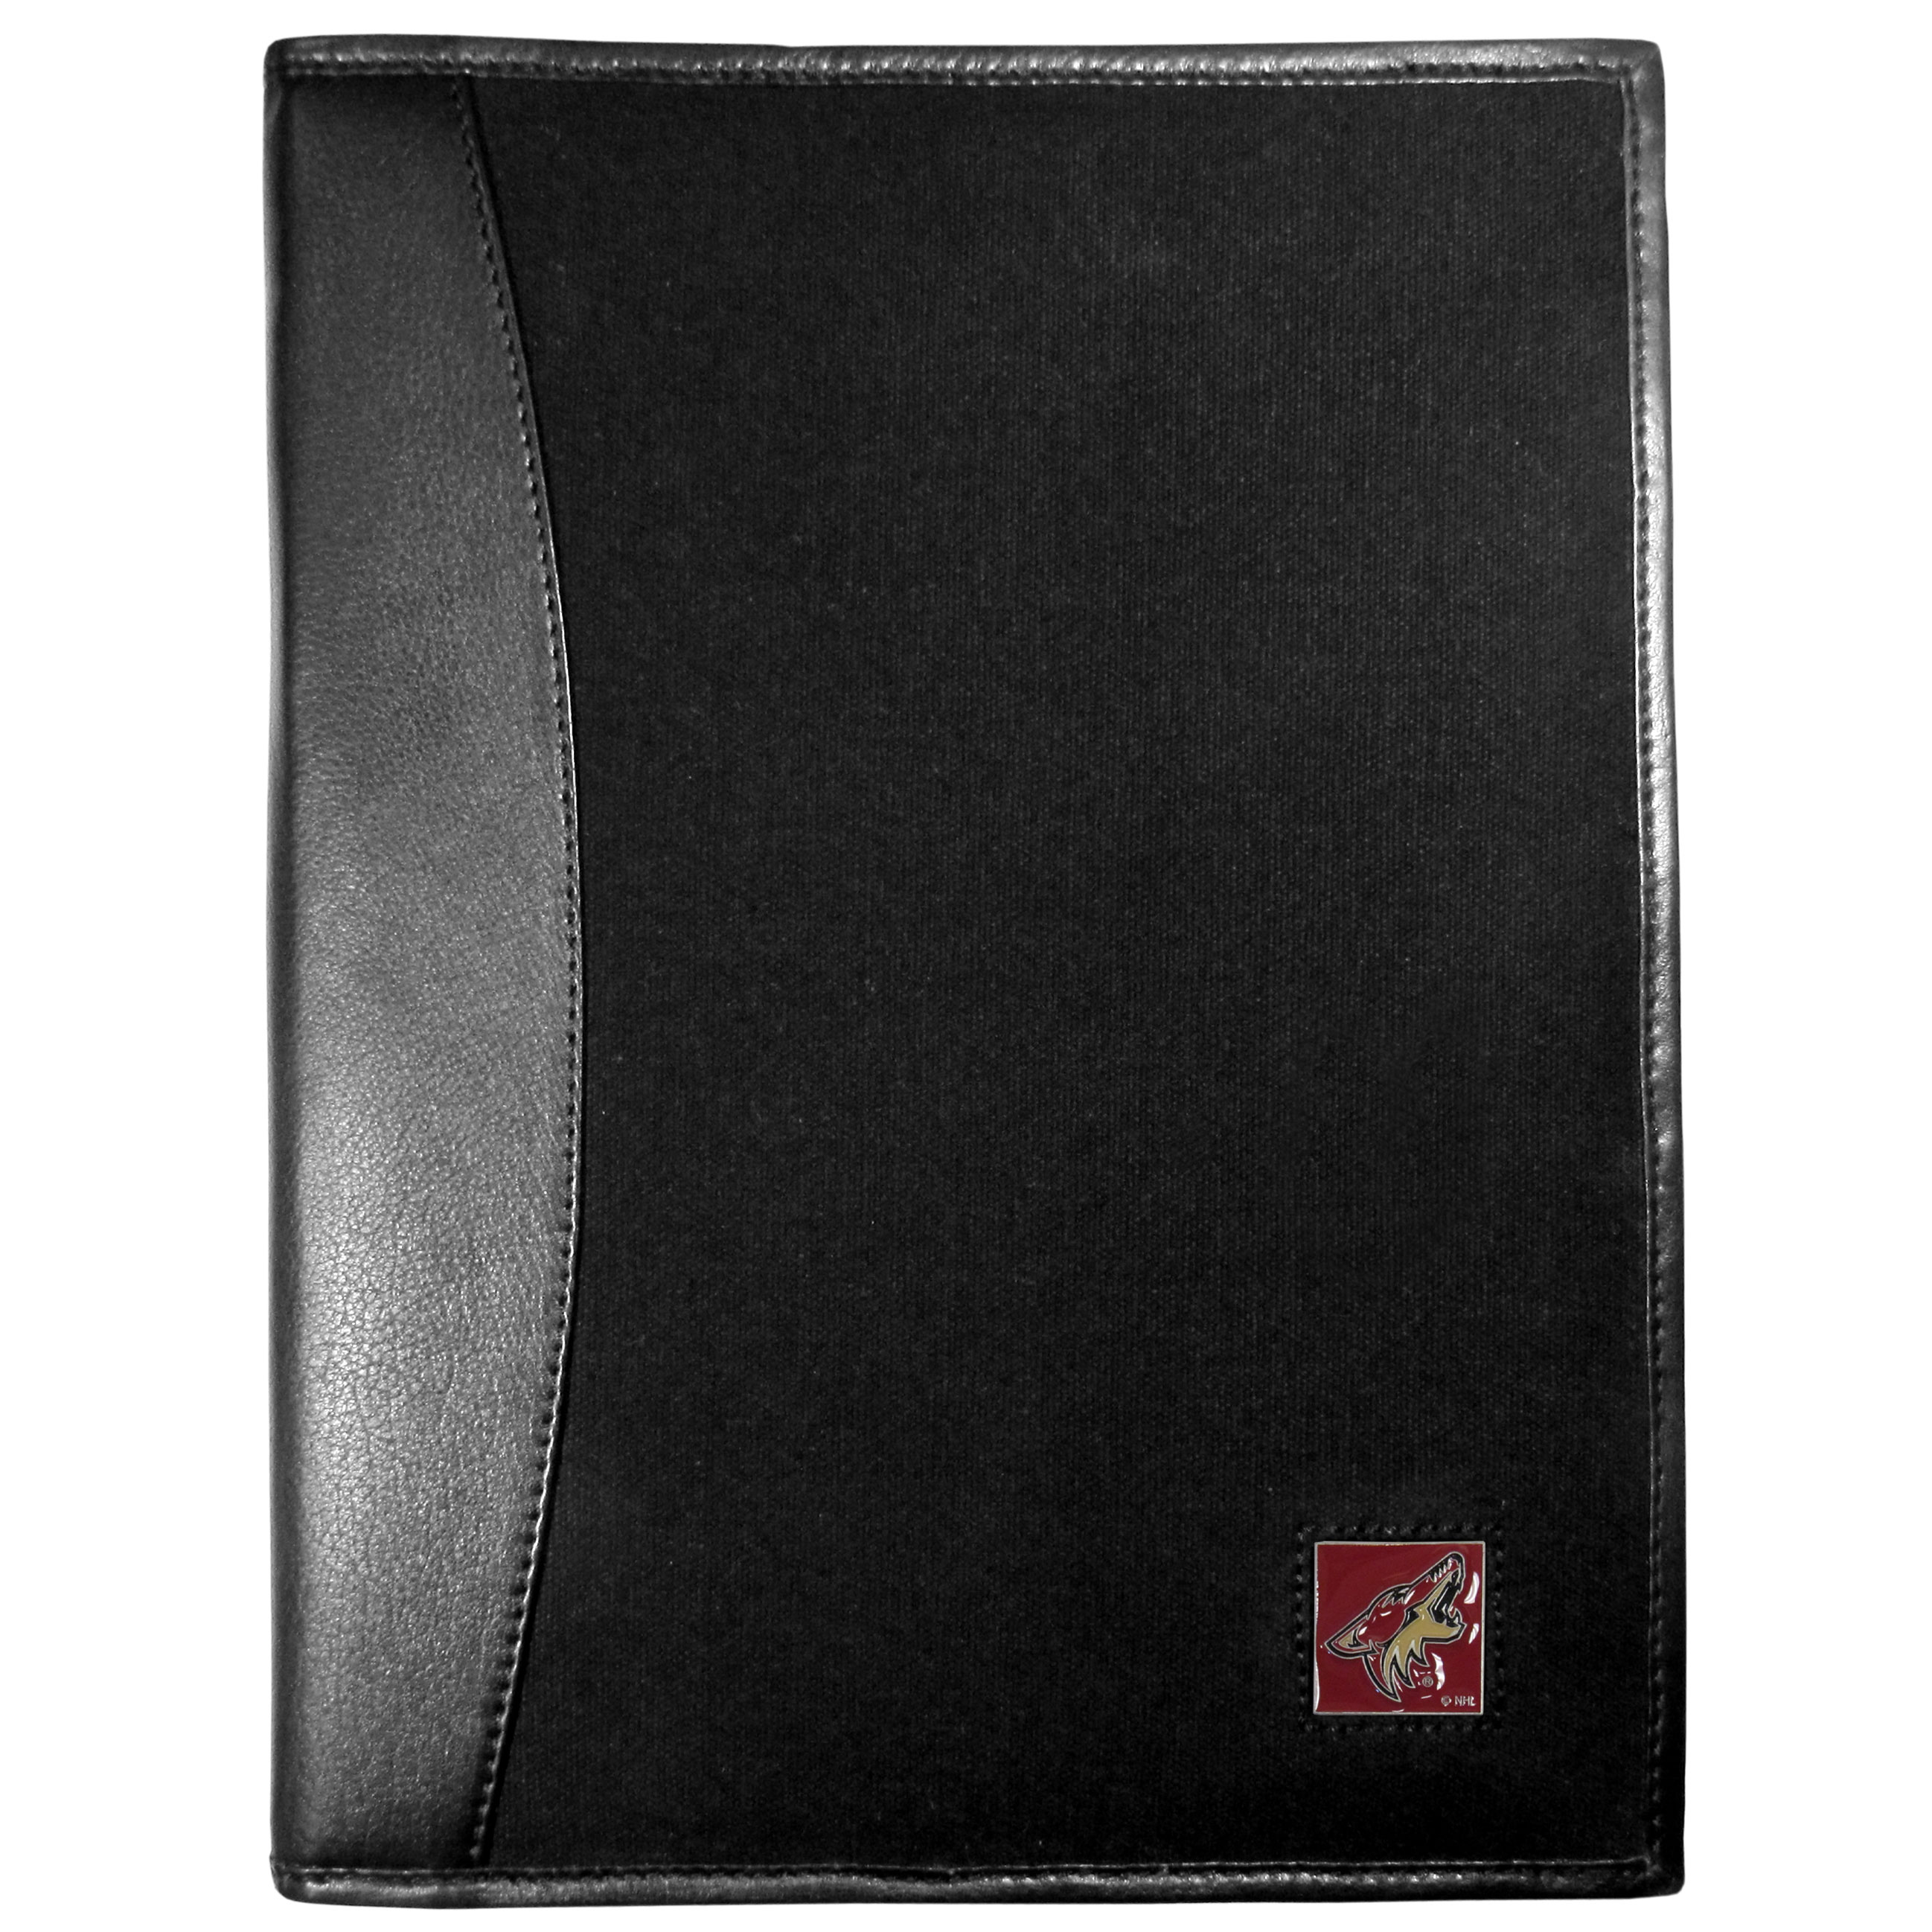 Arizona Coyotes® Leather and Canvas Padfolio - Our leather and canvas padfolio perfectly blends form and function. The attractive portfolio is bound in fine grain leather with an attractive canvas finish and the interior is a soft nylon. This high quality business accessory also features a fully cast metal Arizona Coyotes® emblem that is subtly set in the corner of the organizer. It is packed with features like 6 card slots for badges, business cards, hotel keys or credit cards and ID with a large pocket for loose papers and a writing tablet slot making it a must-have for the professional on the go.